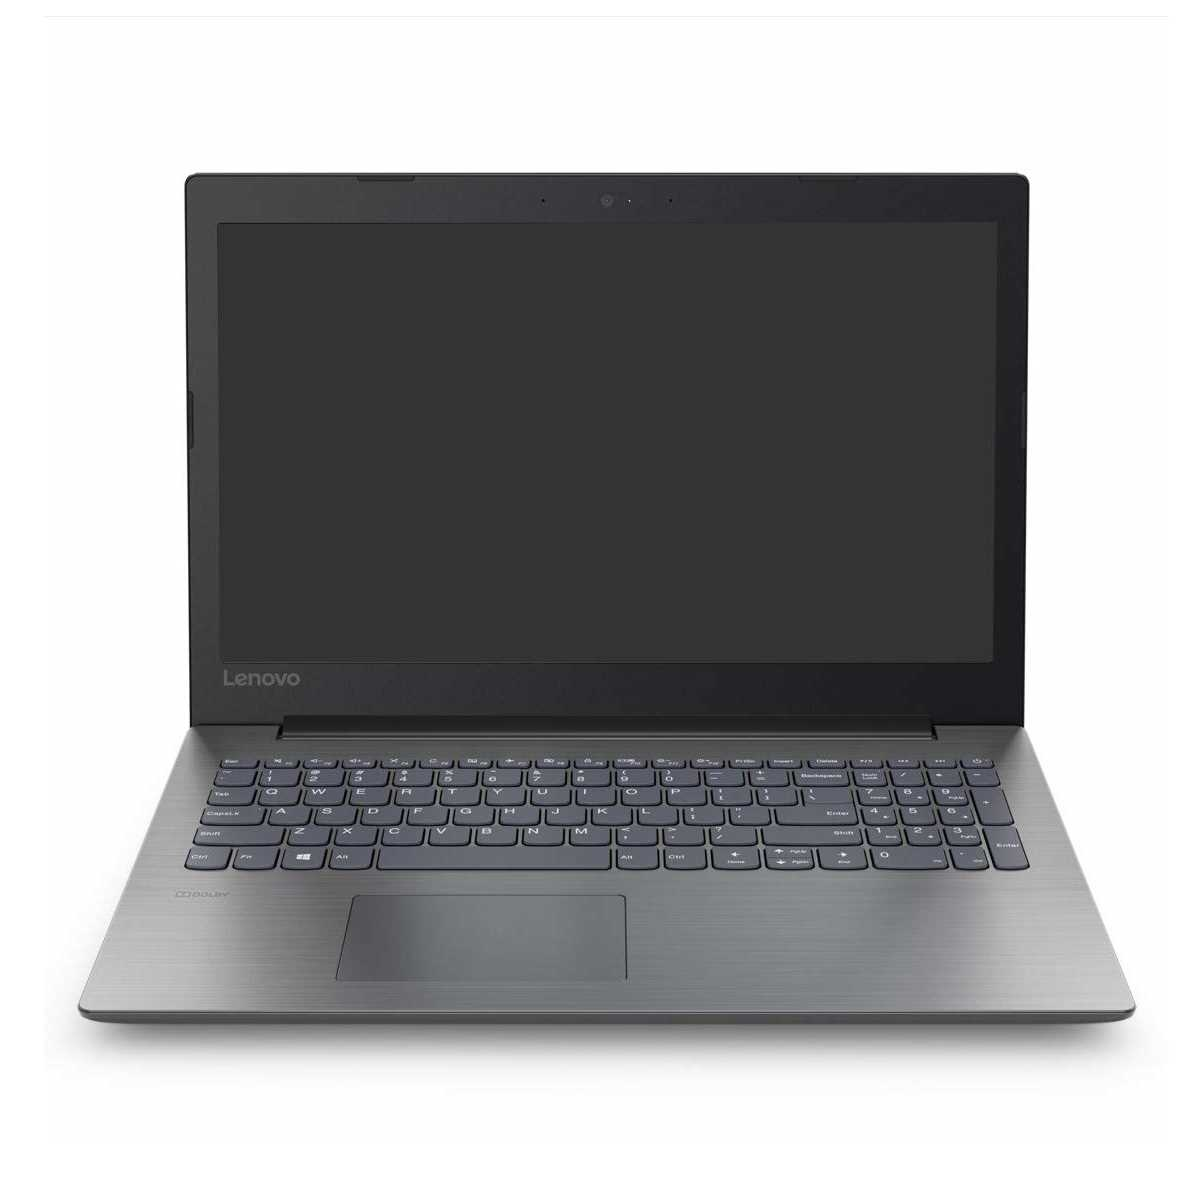 Lenovo Ideapad 330 (81DE01Q6IN) Laptop